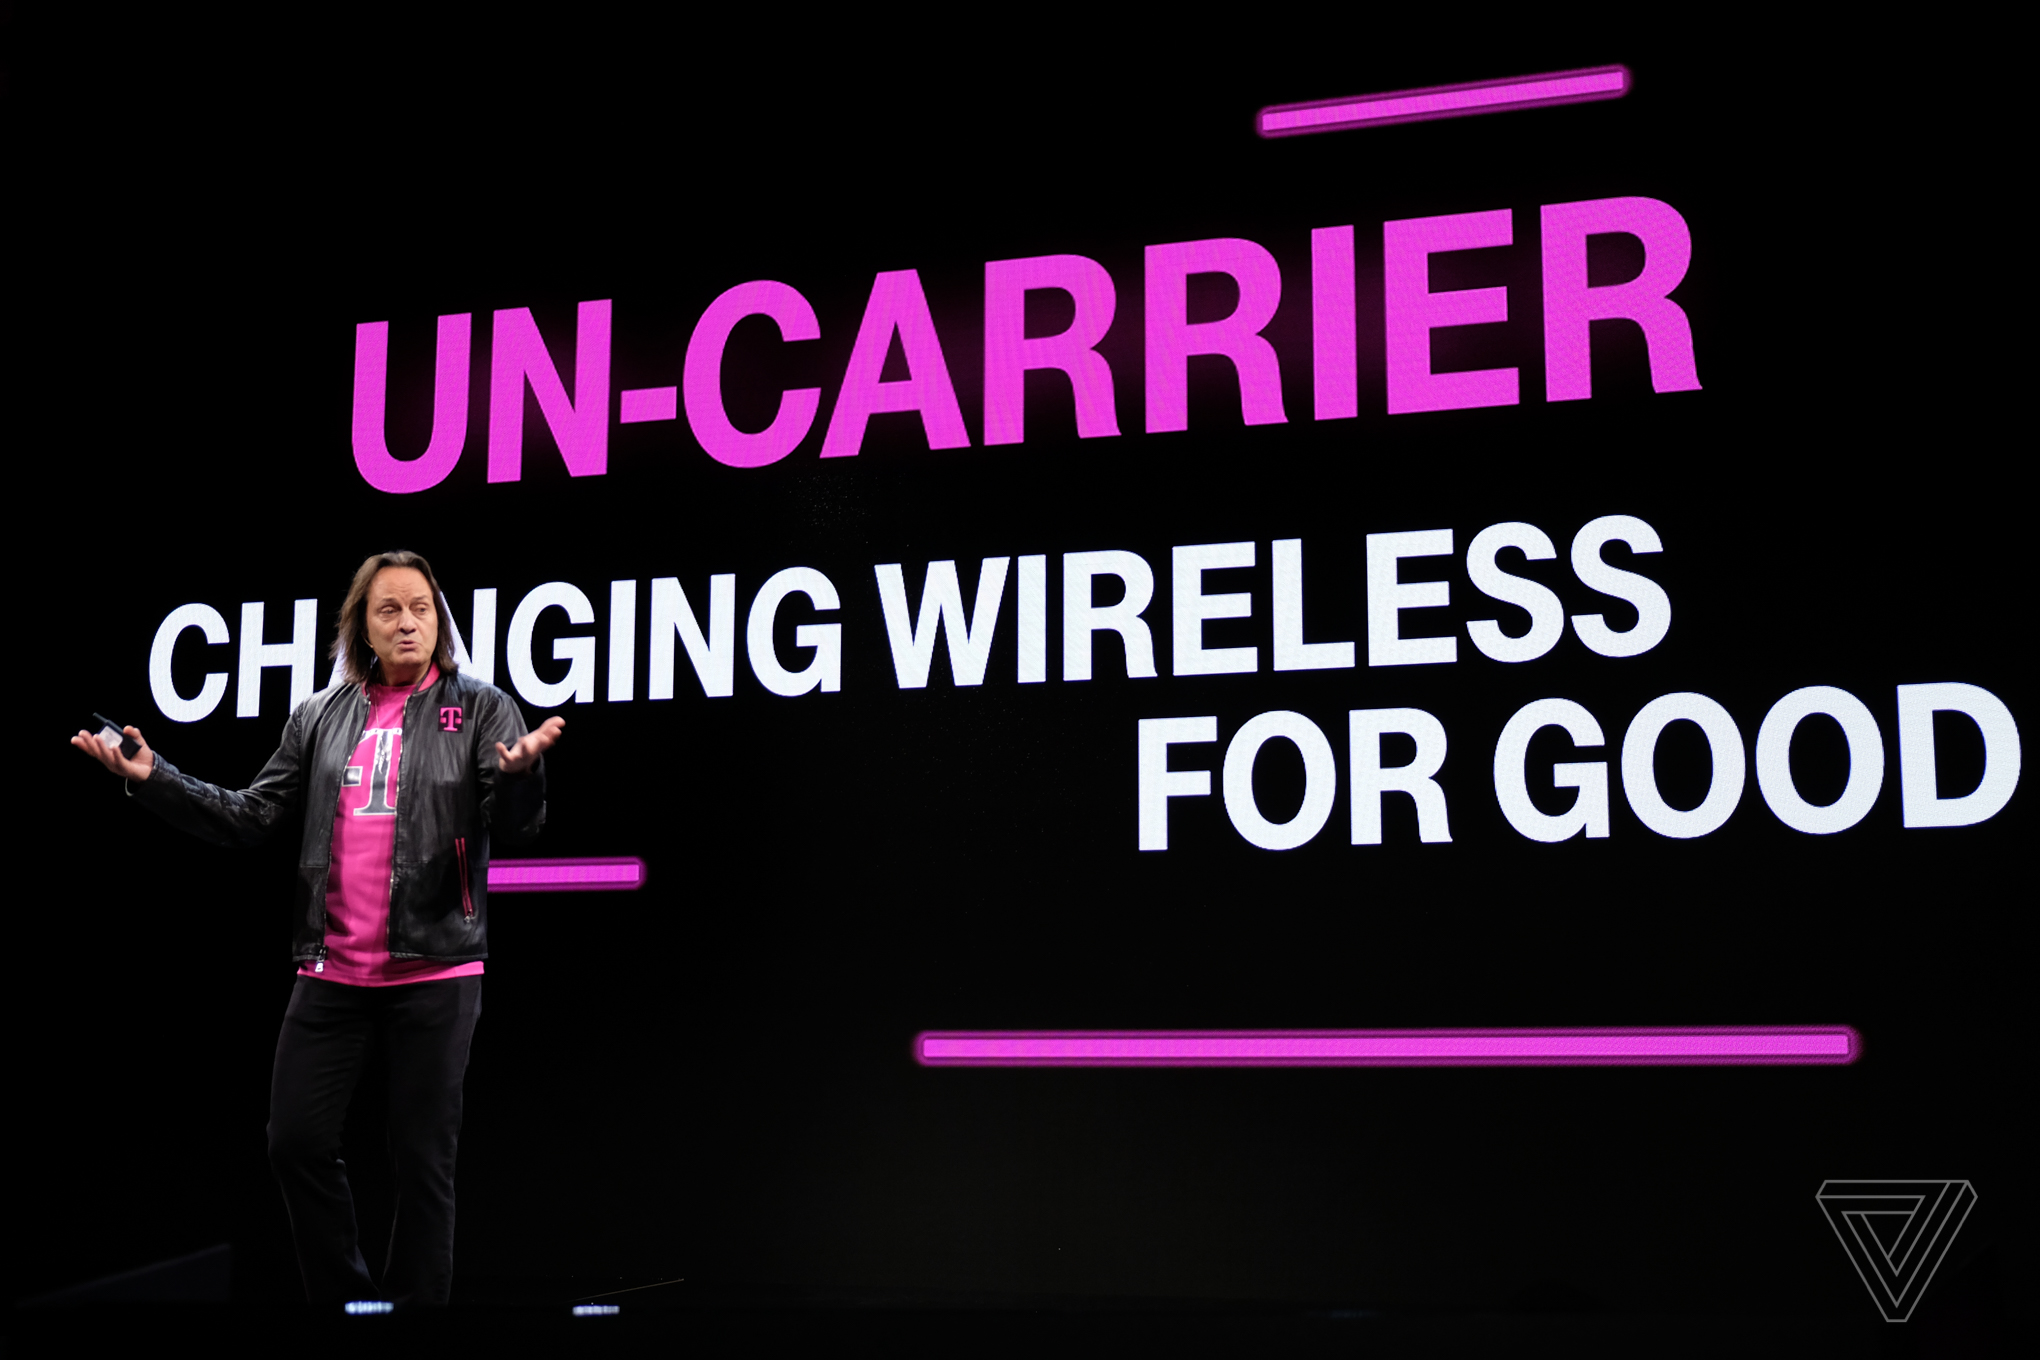 John Legere 2017 stock